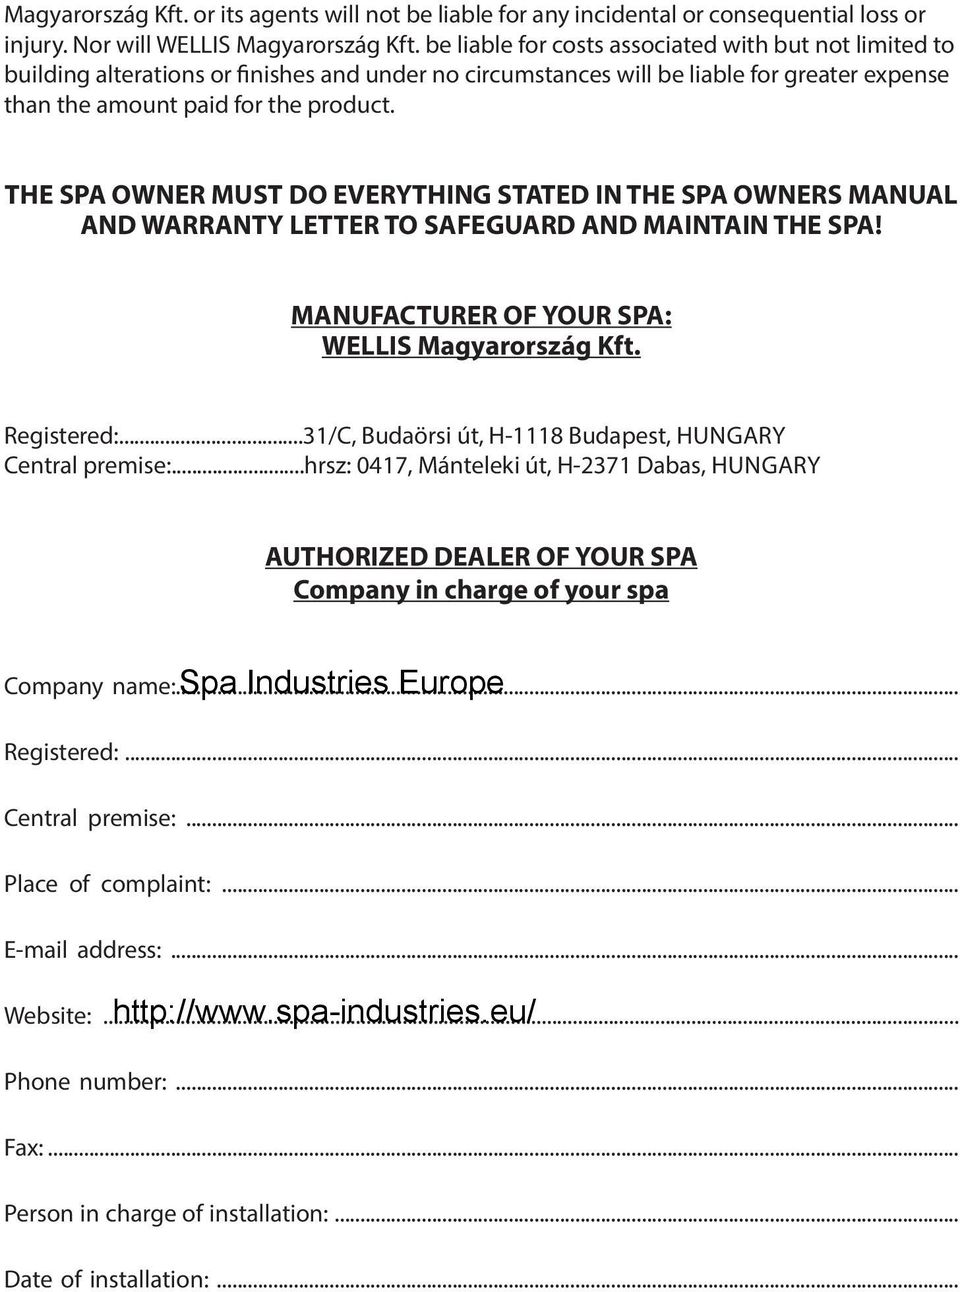 THE SPA OWNER MUST DO EVERYTHING STATED IN THE SPA OWNERS MANUAL AND  WARRANTY LETTER TO